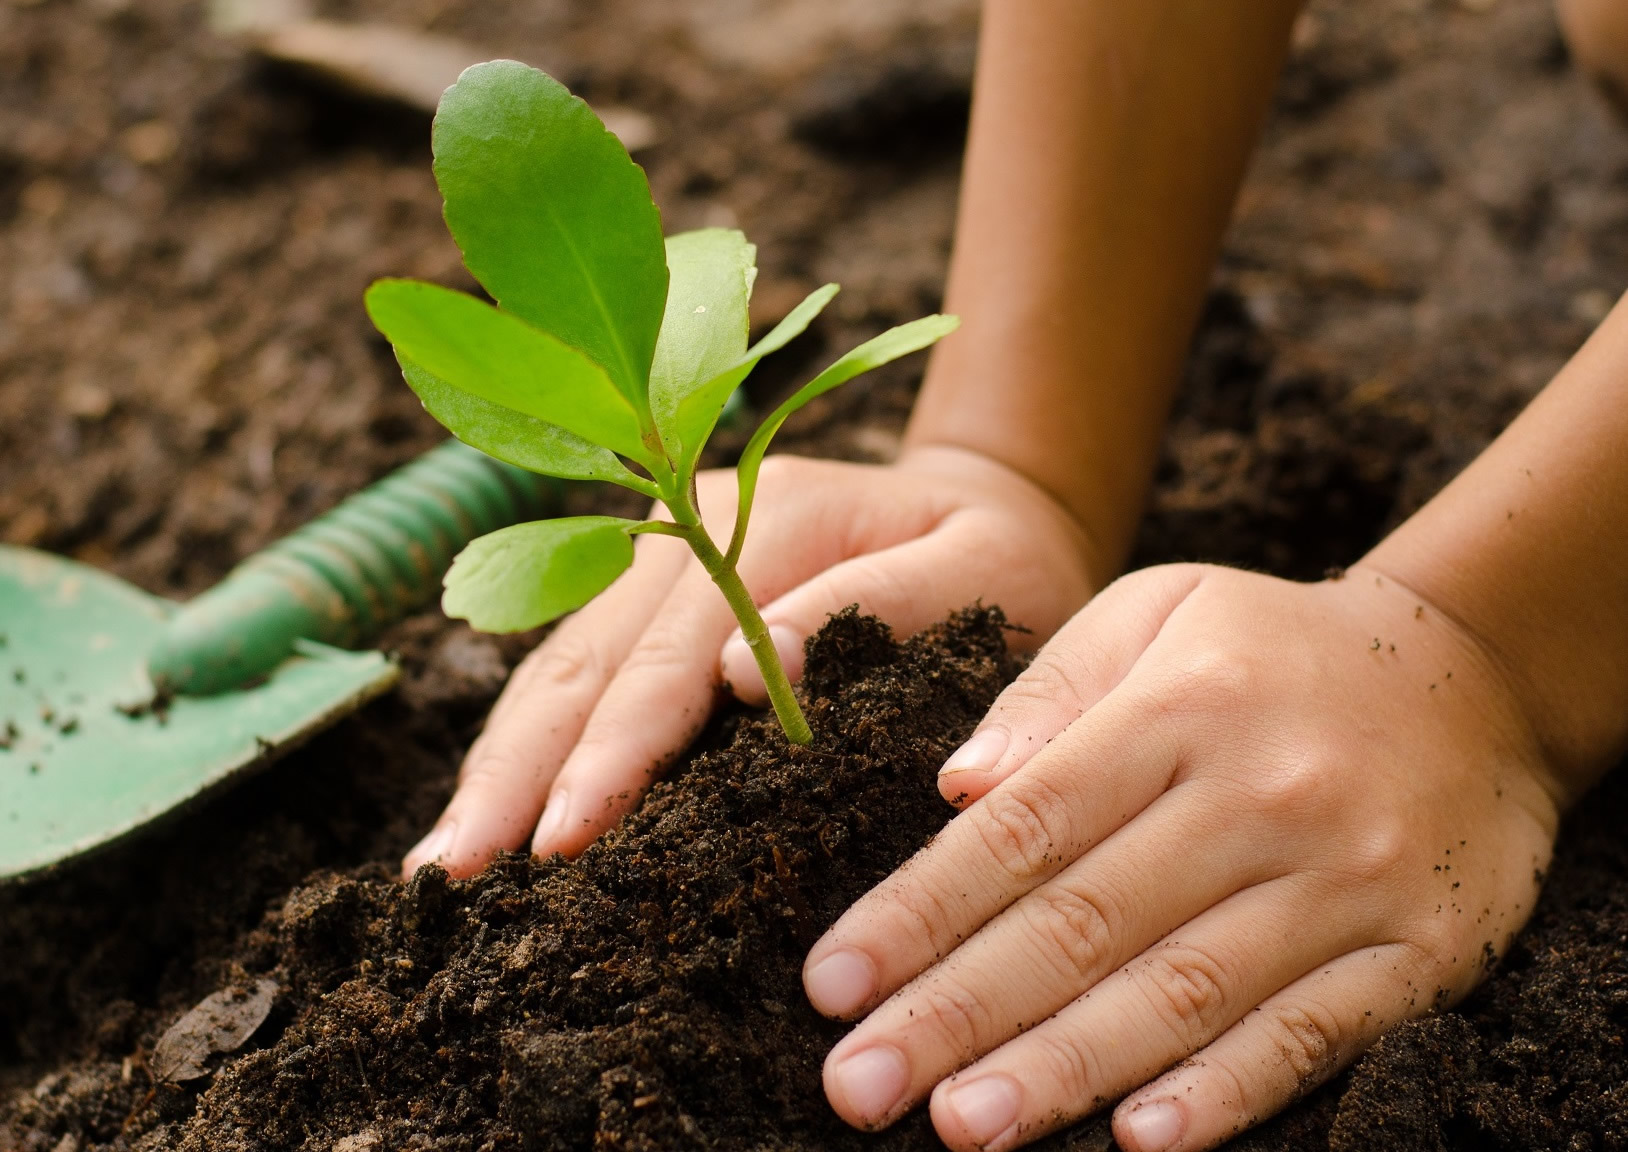 Volunteers Needed For Tree Planting Zanker Recycling